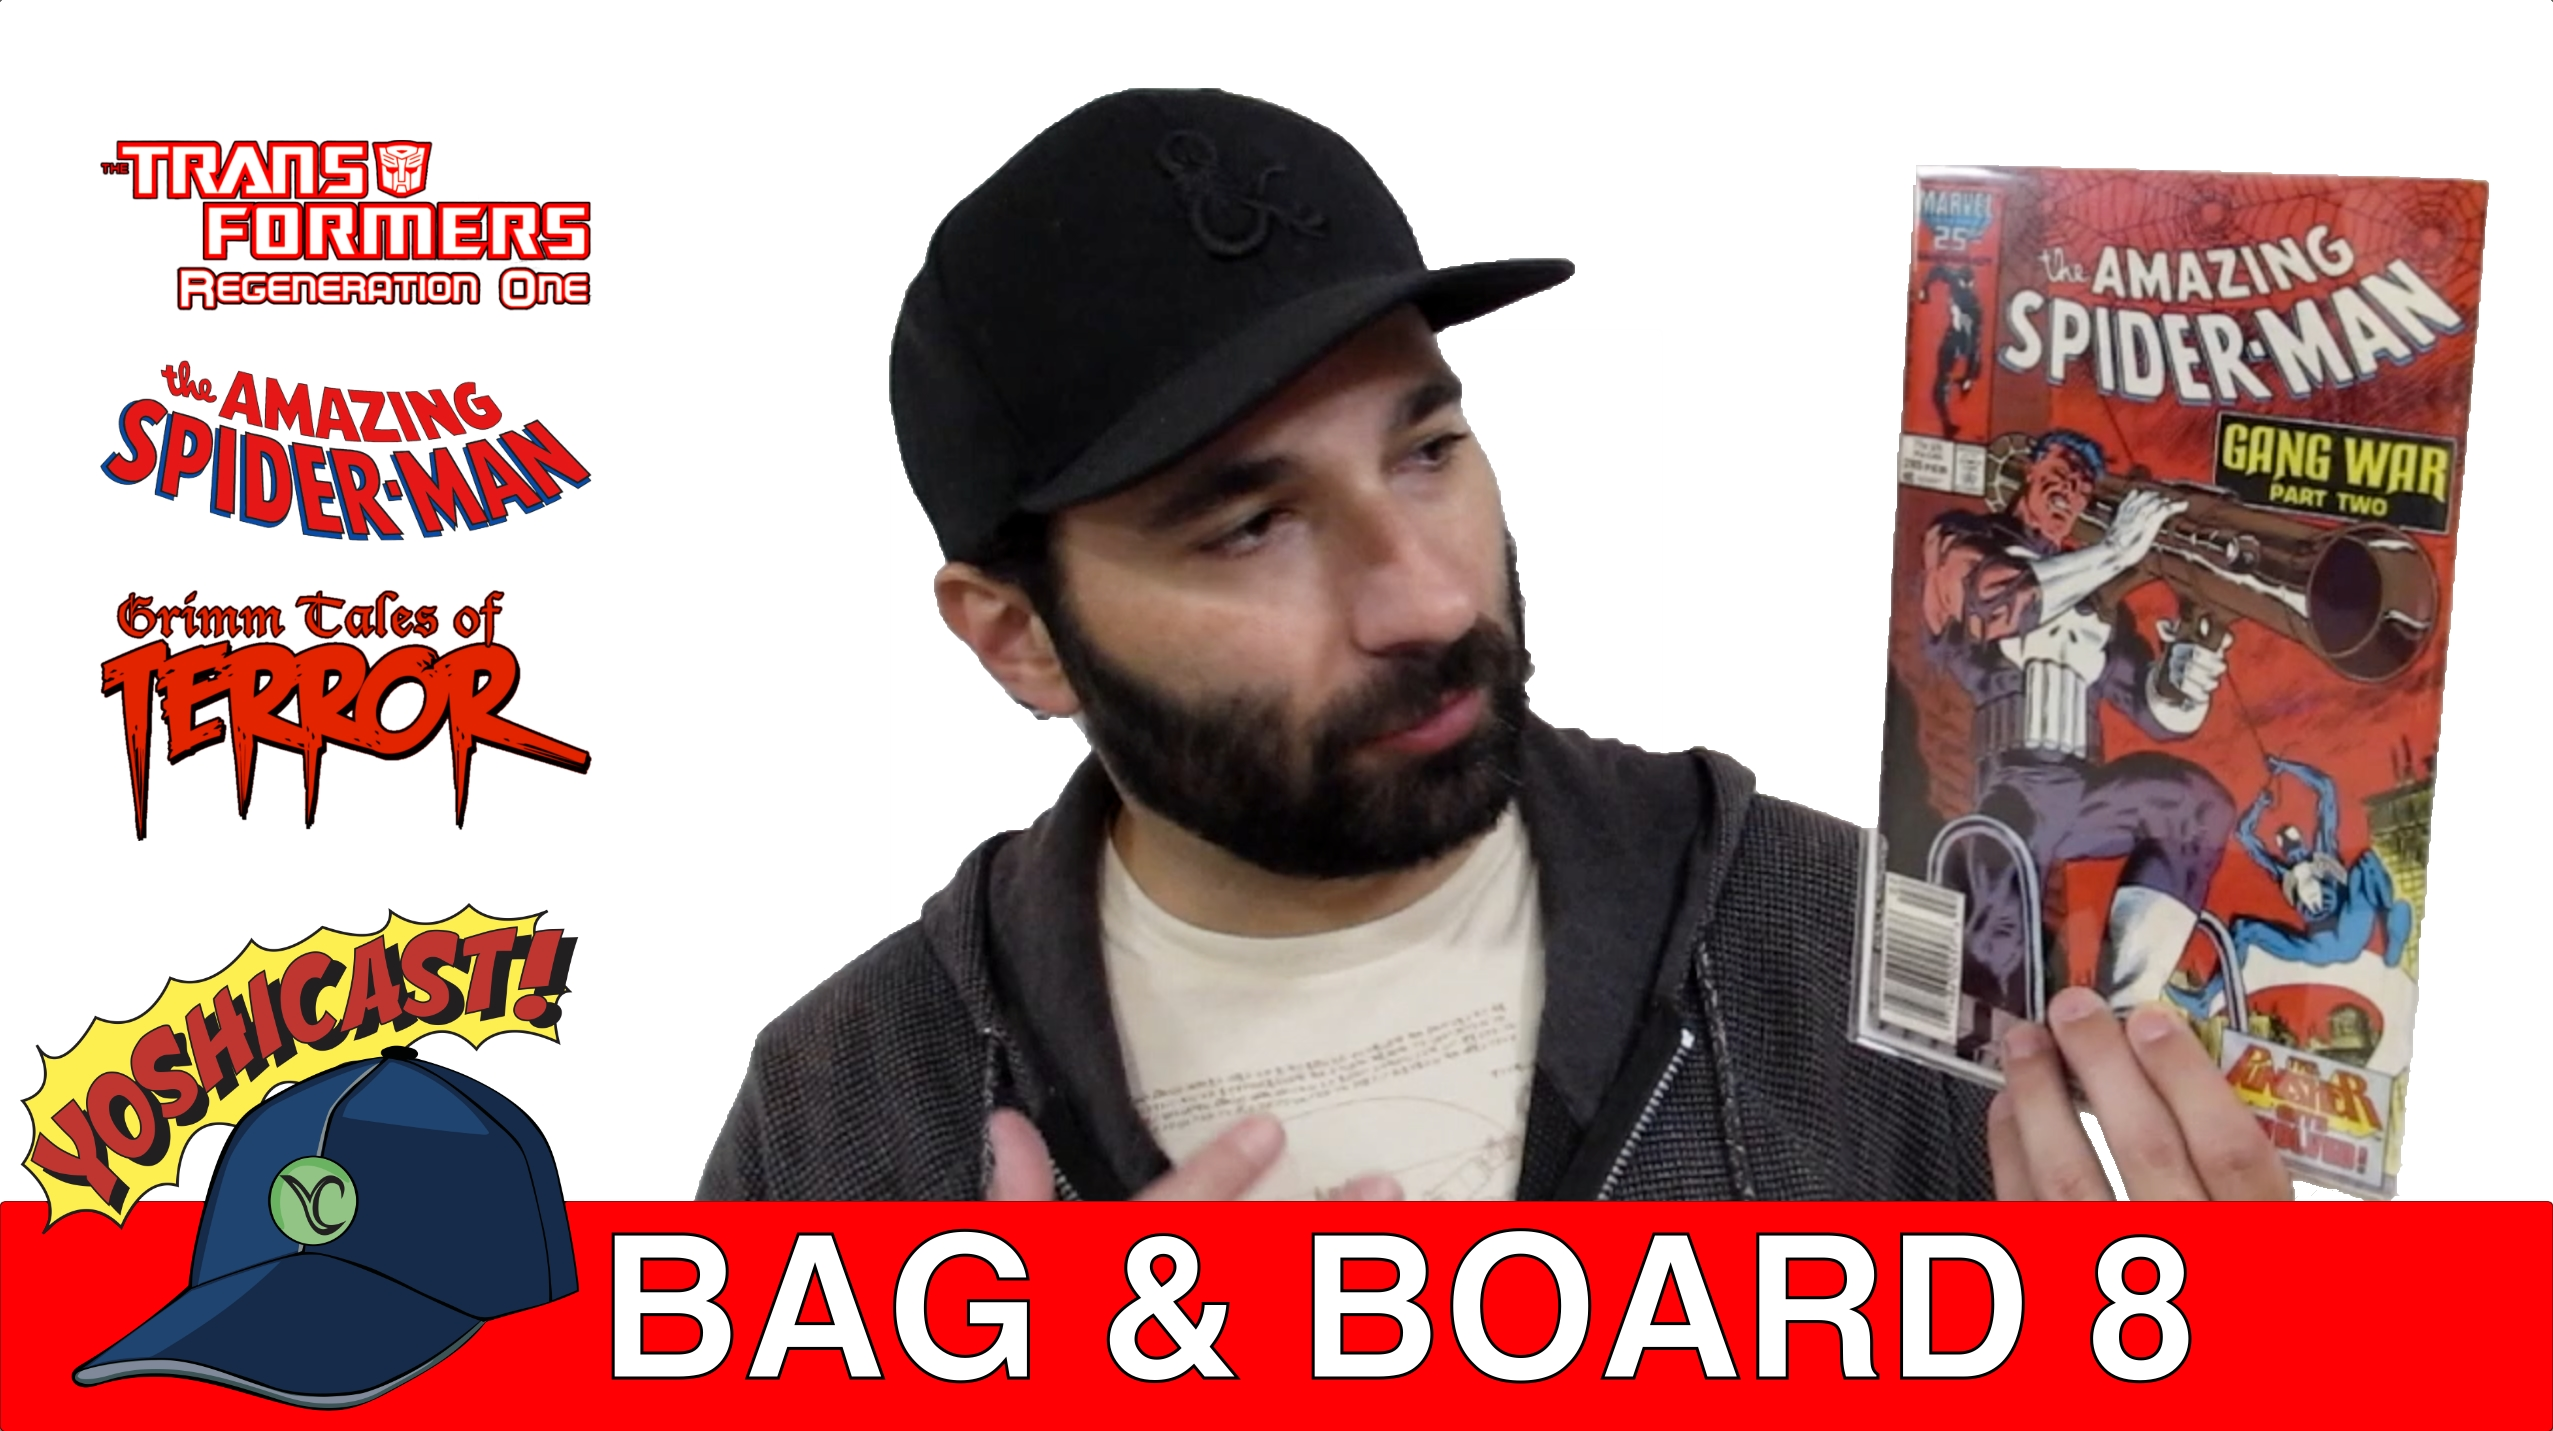 Bag & Board 8 | Transformers, The Amazing Spider-Man, Grimm Tales Of Terror